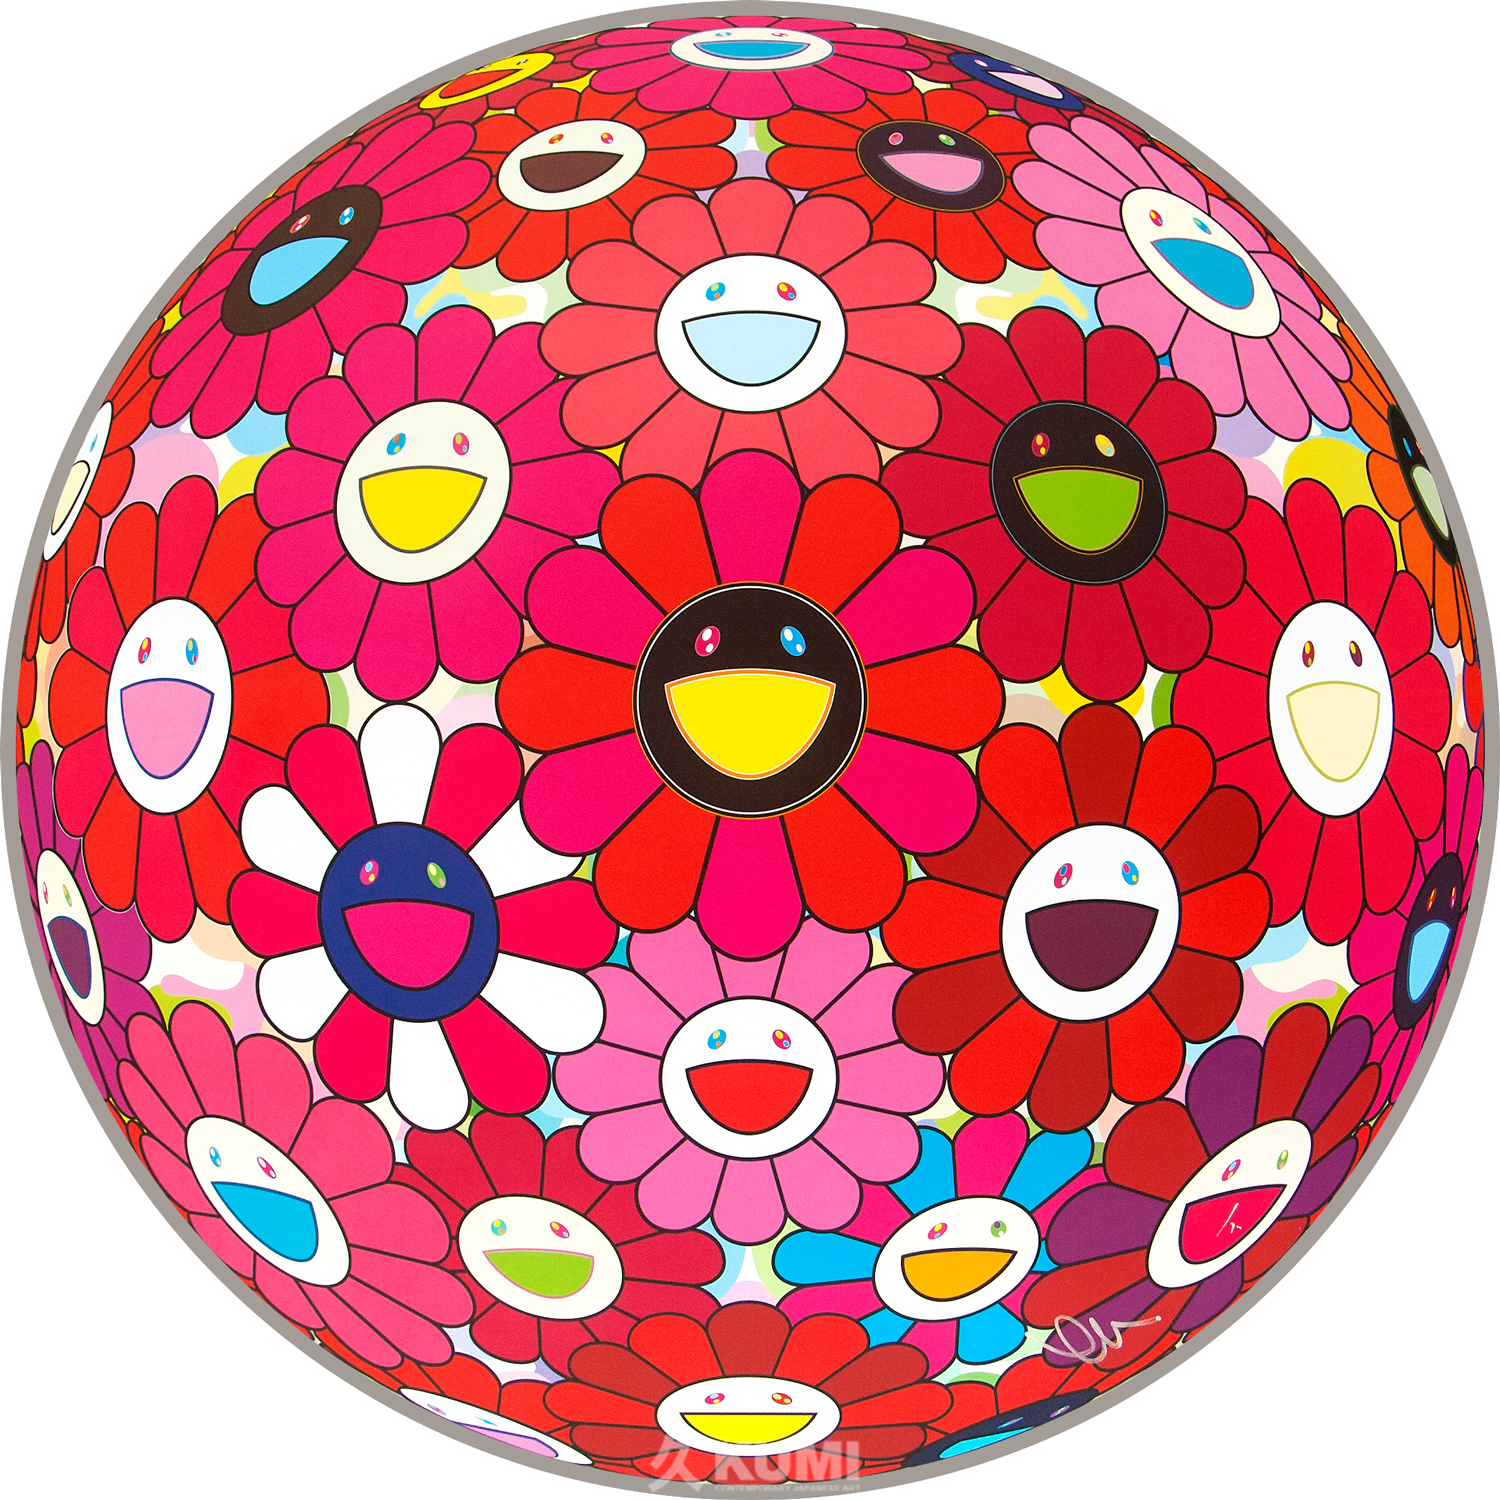 Takashi Murakami: Flower Ball Red (Letter to Picasso)